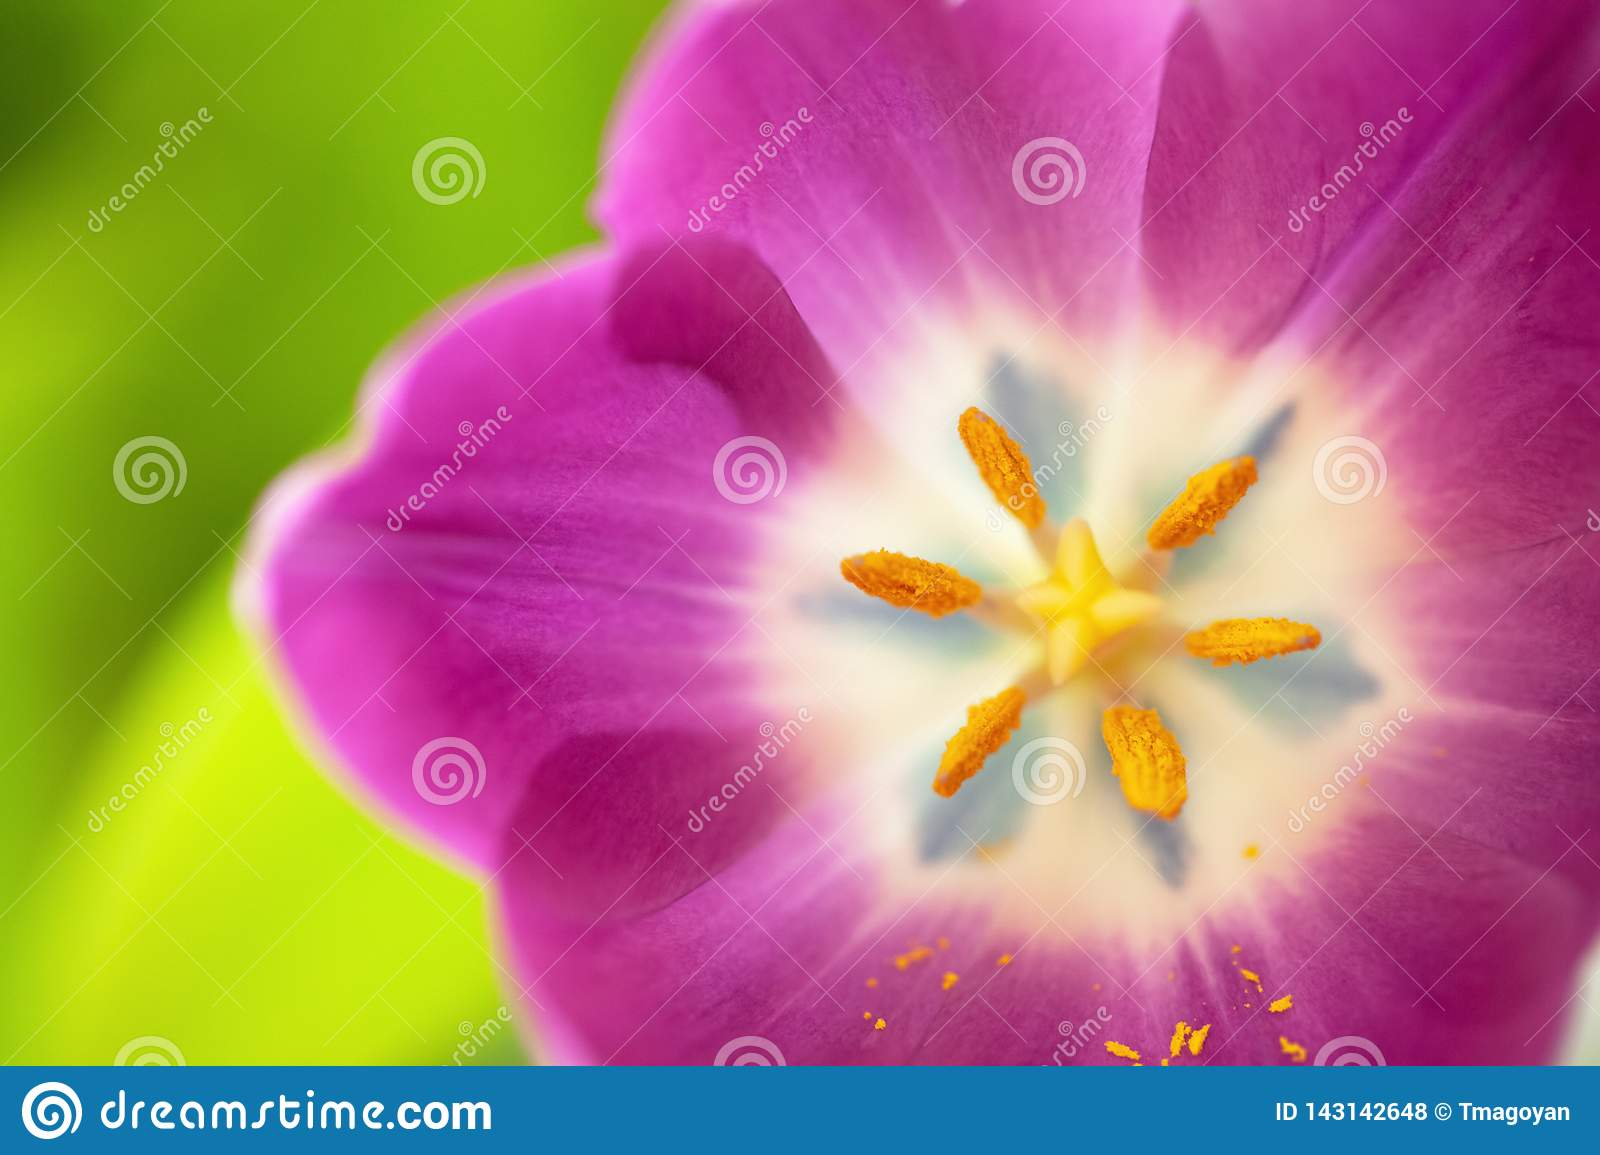 Pink tulip on green blurred background. Macro. Abstract. Close-up. Horizontal. Mock up with copy space for greeting card